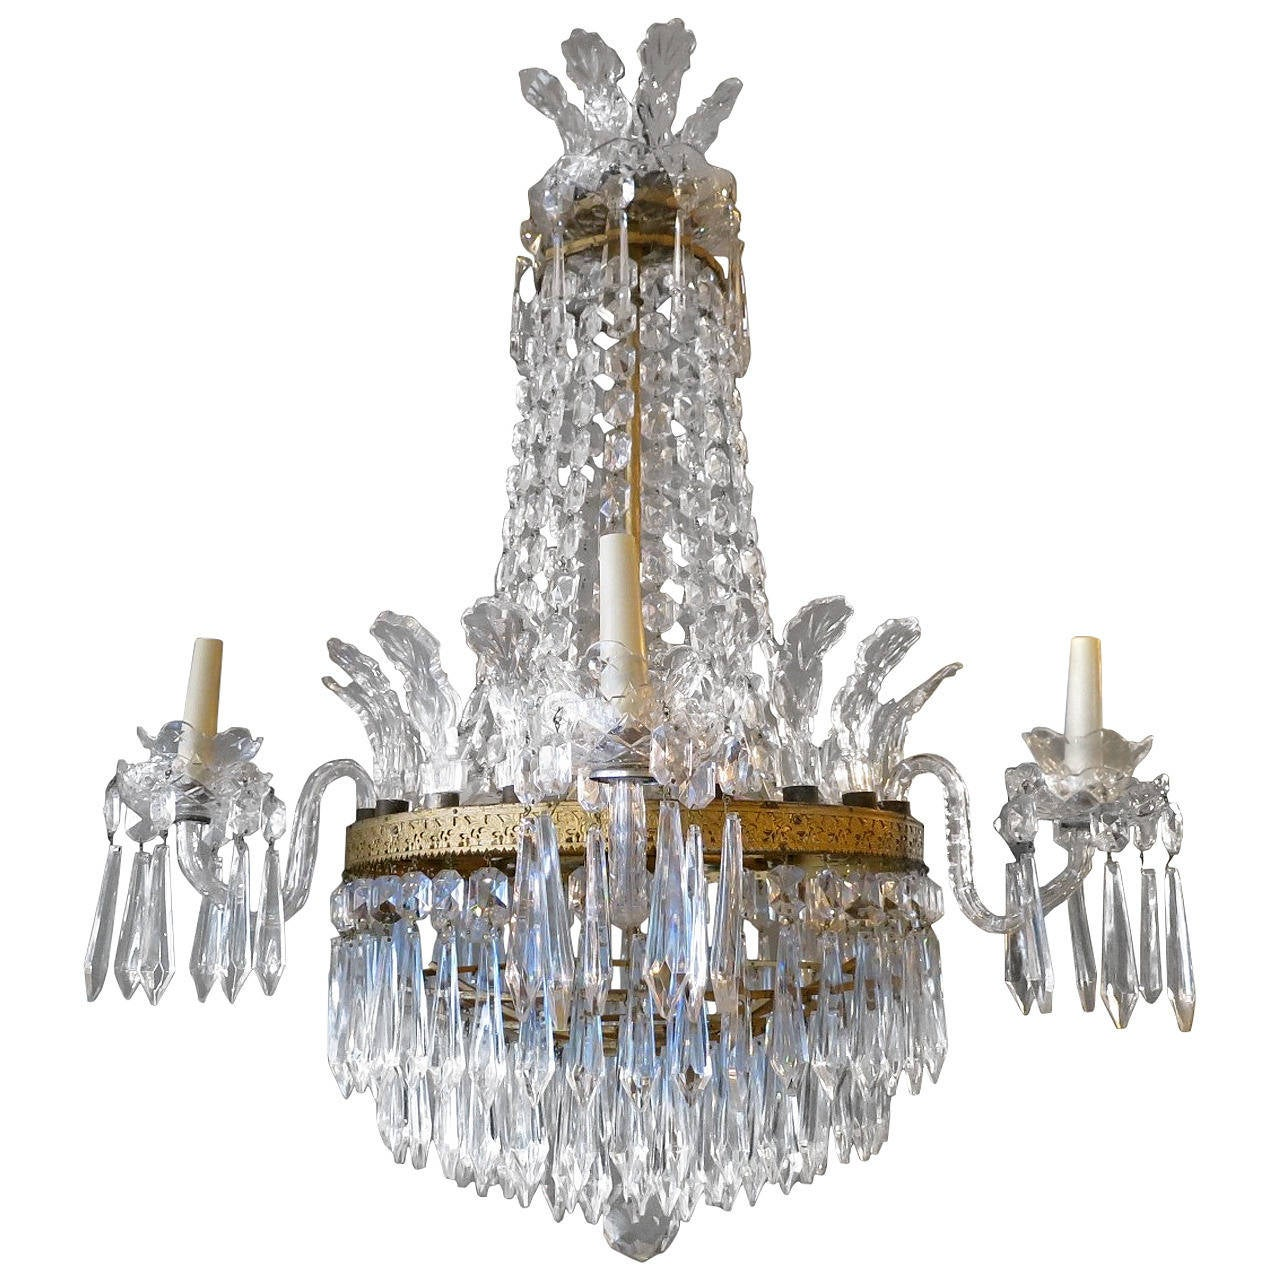 Empire style waterford crystal chandelier at 1stdibs empire style waterford crystal chandelier 1 arubaitofo Gallery